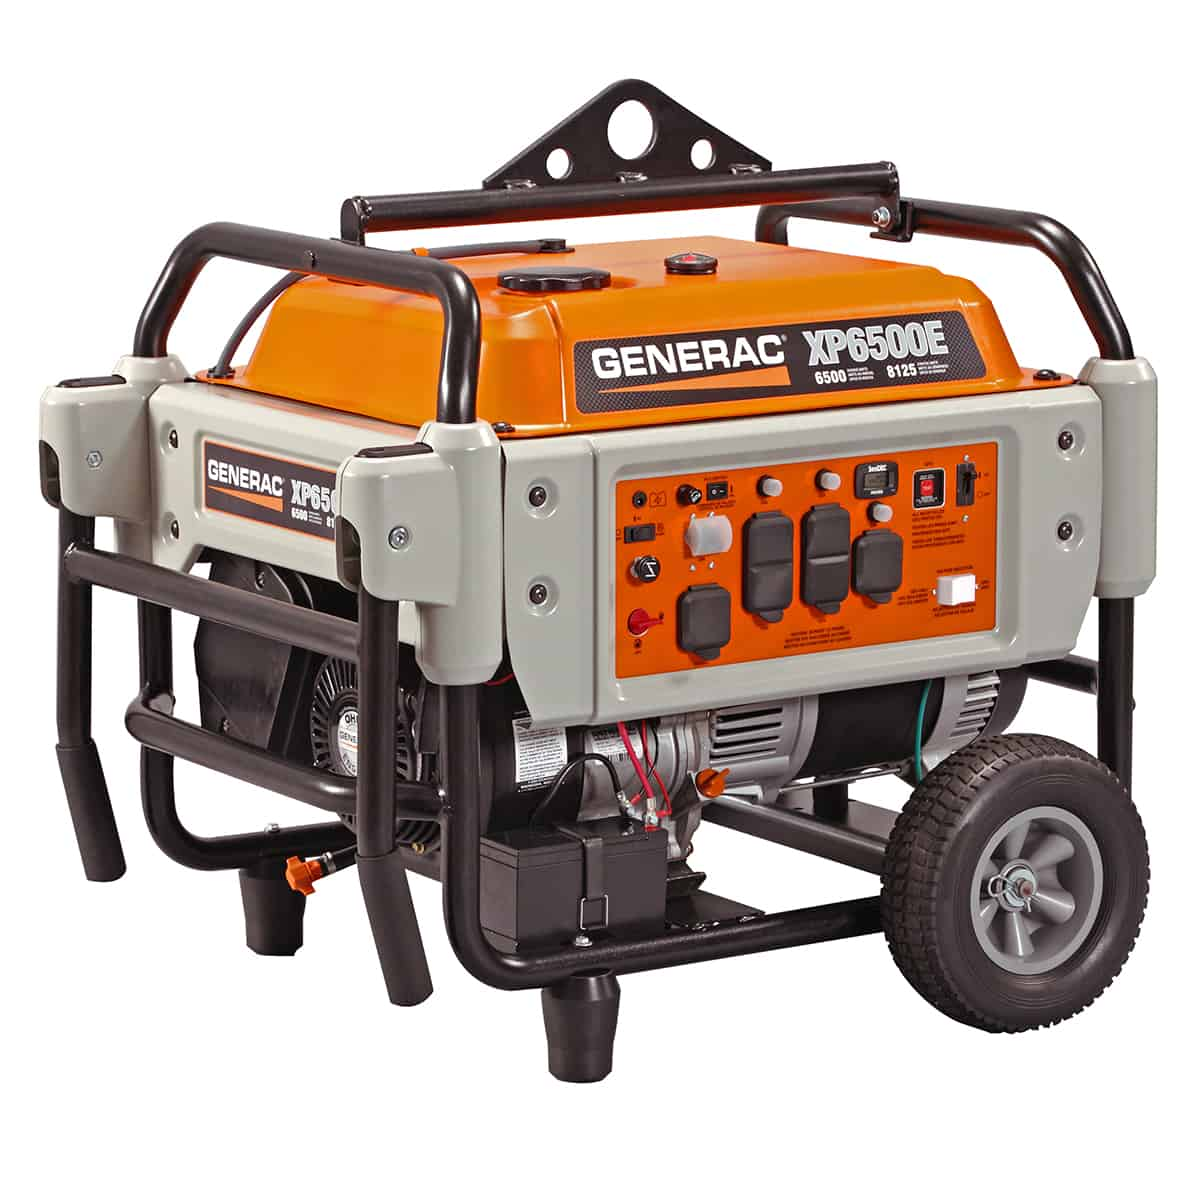 Generac Portable XP Series XP6500E Electric Start 5930